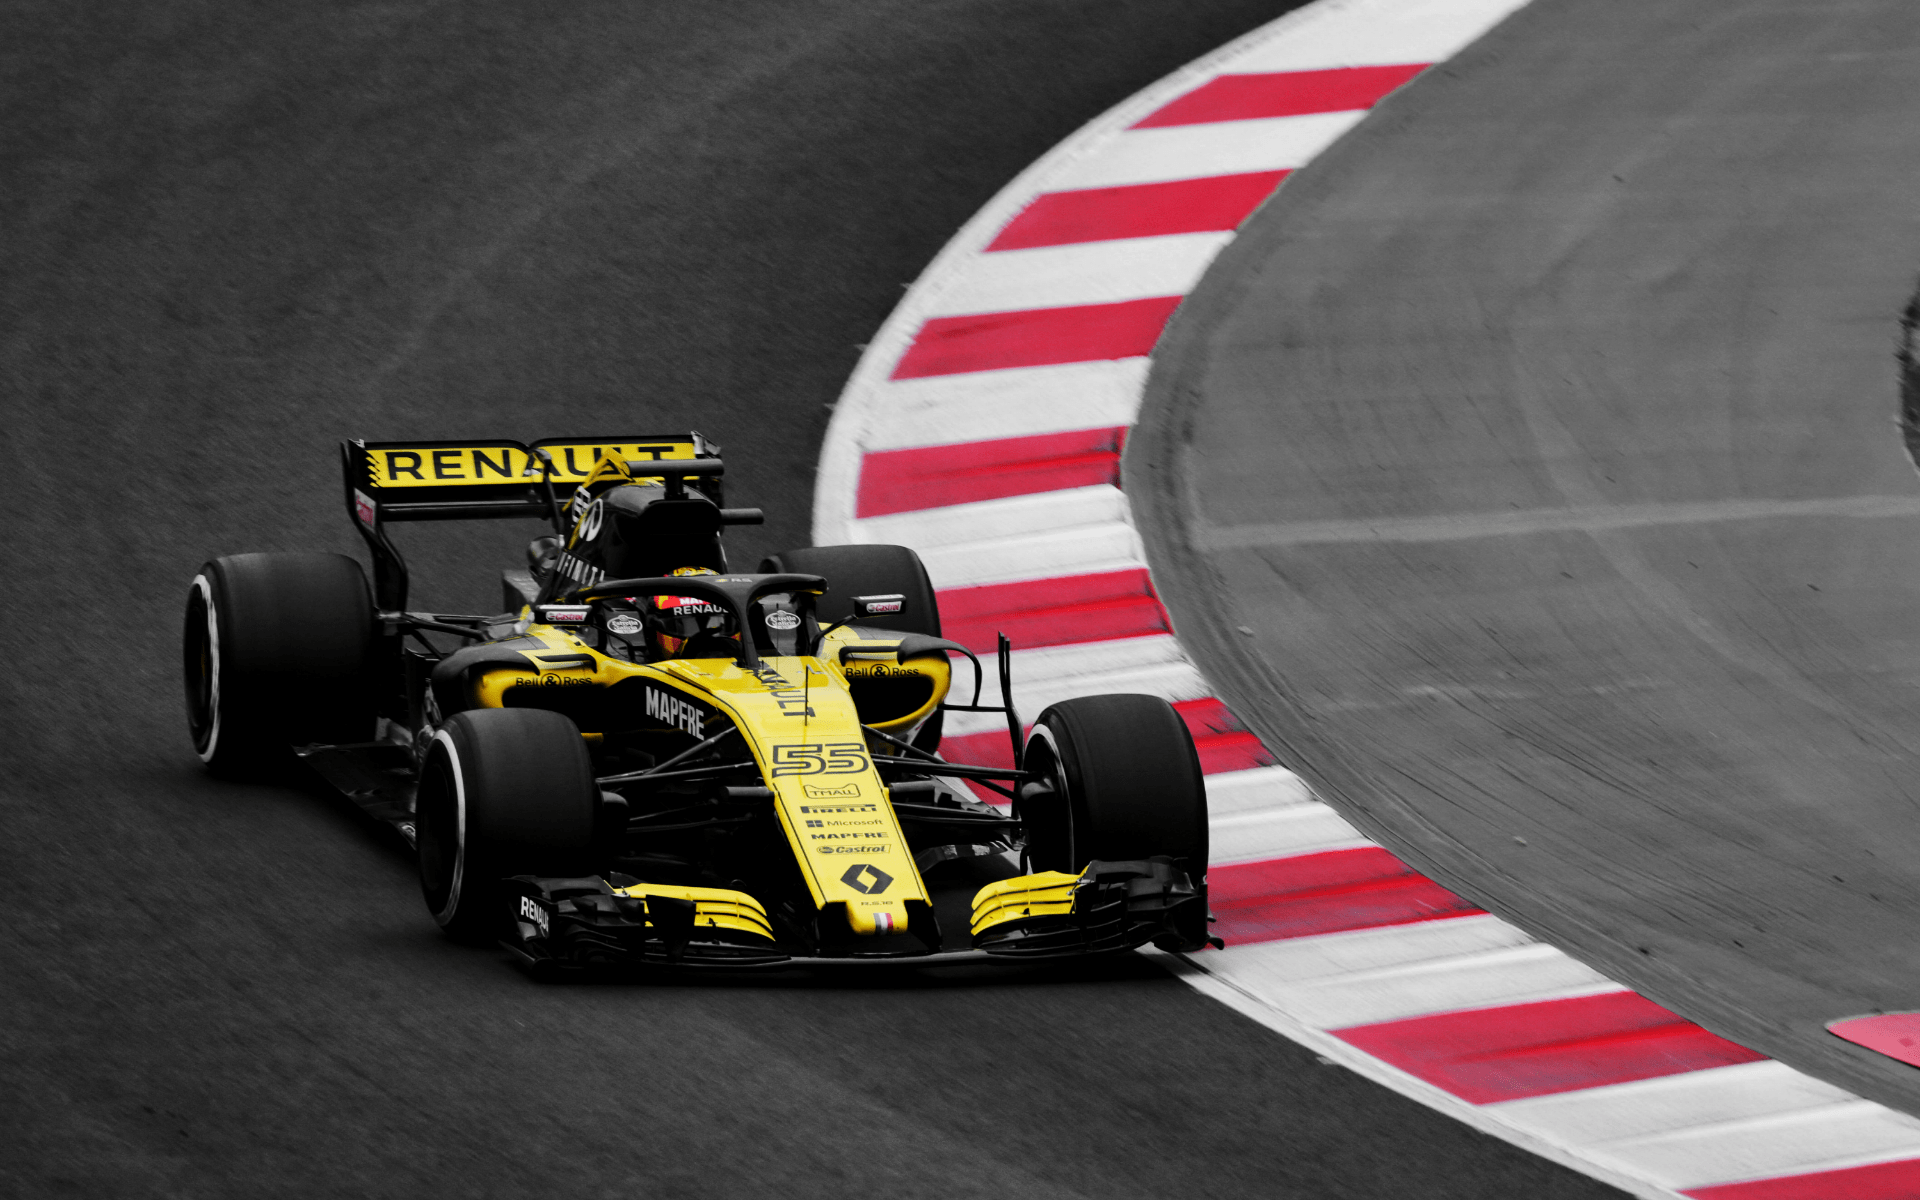 Renault Sport Formula One Team in action (Photo: Bell & Ross)